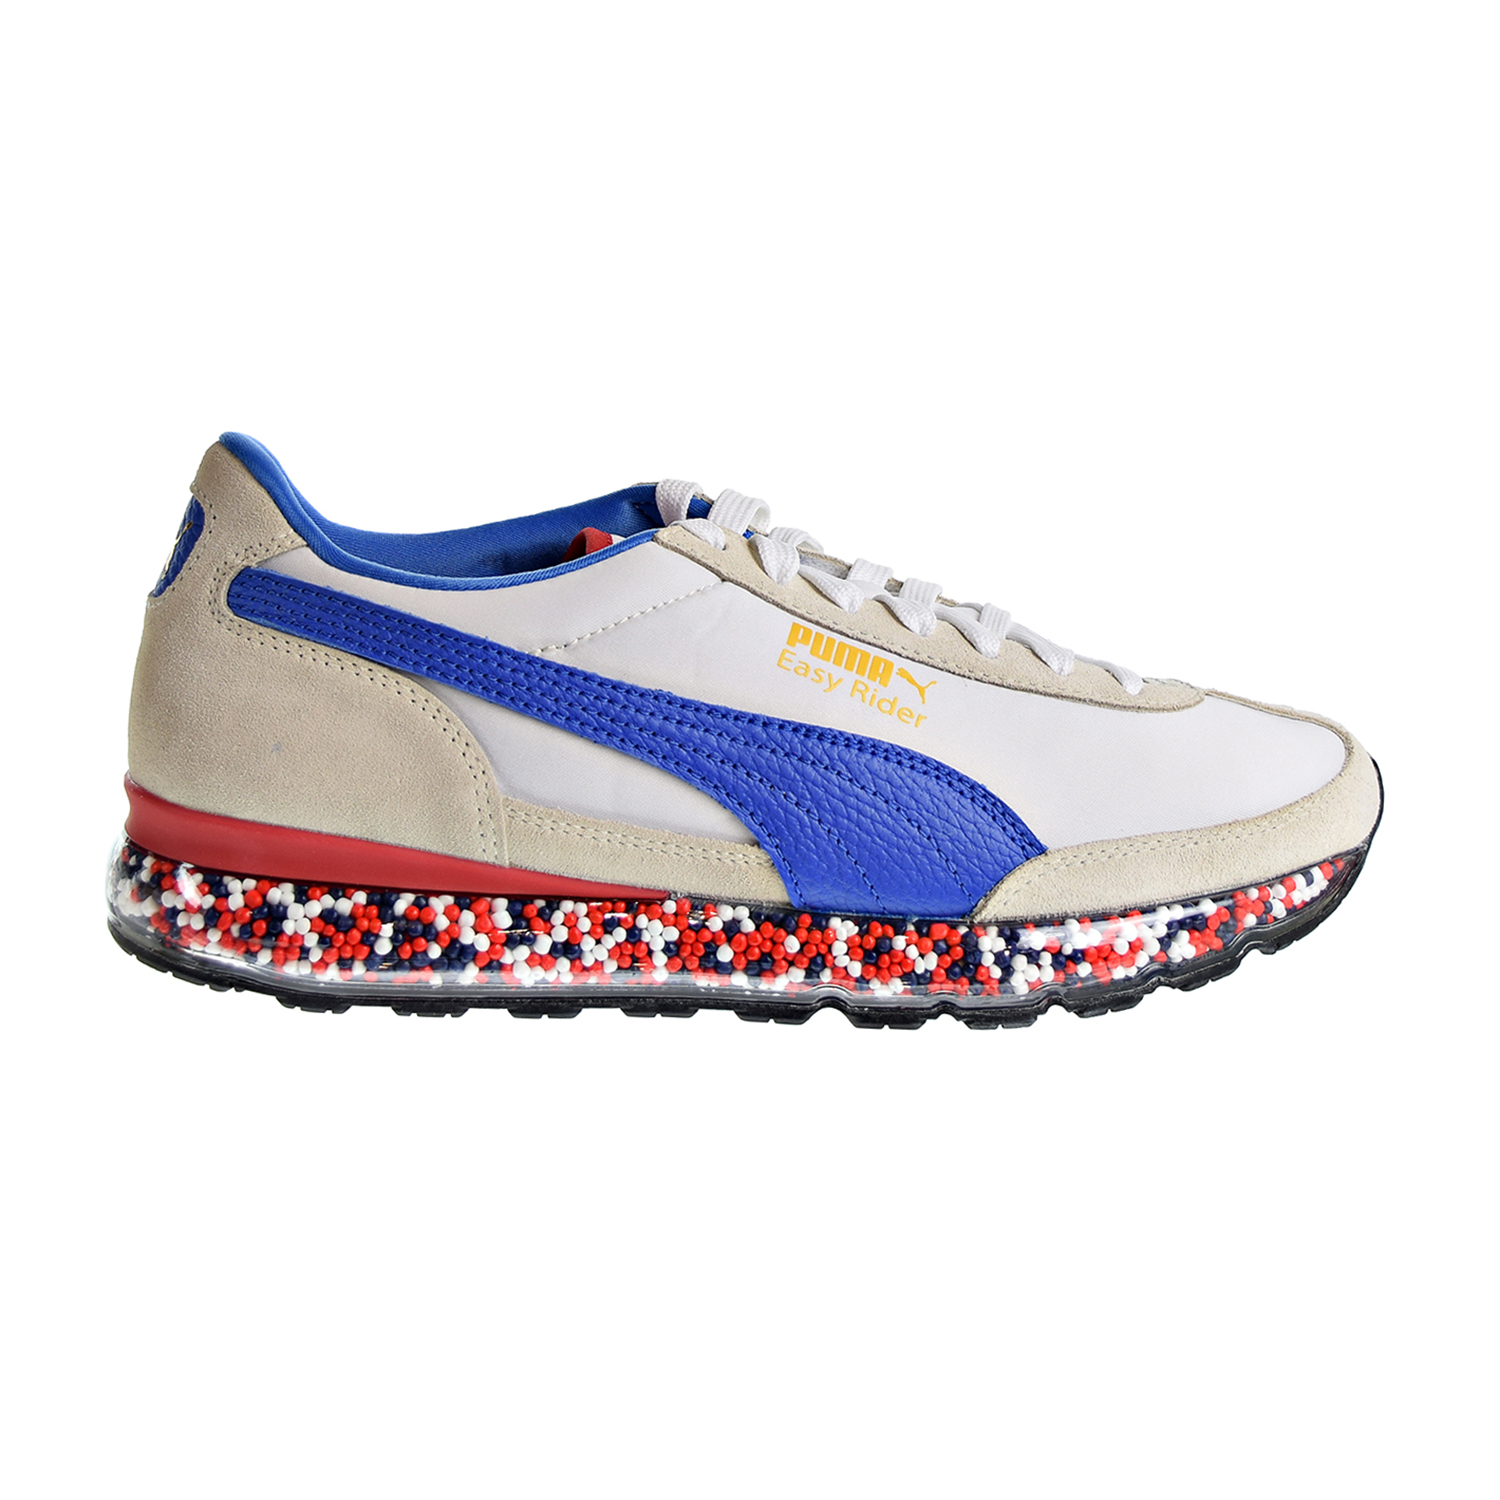 Details about Puma Jamming Easy Rider Men's Shoes Whisper White-Strong Blue  367832-04